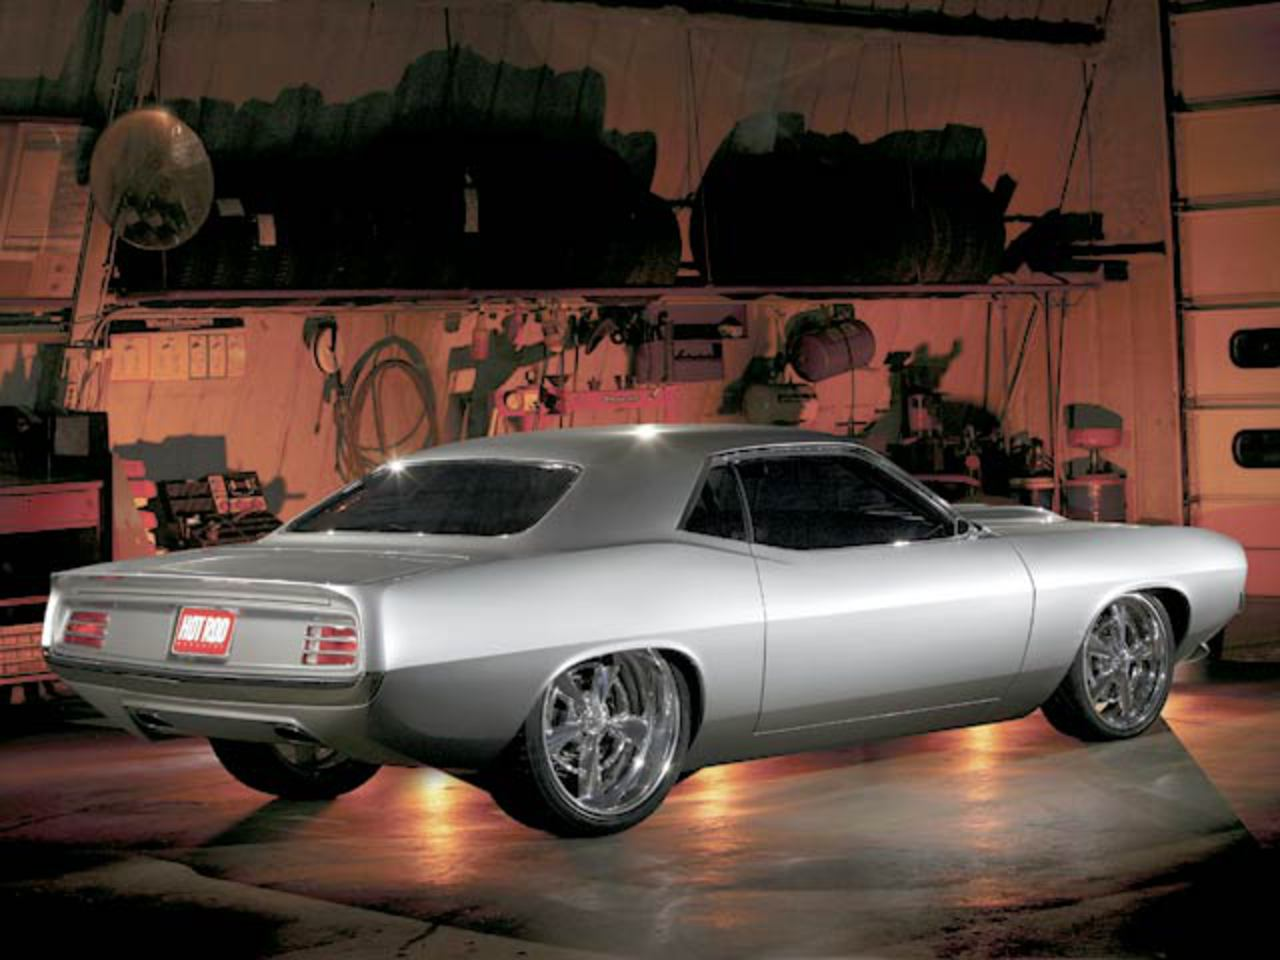 un Plymouth Barracuda de 1970, pertenece a Joe Rogan,un afamado